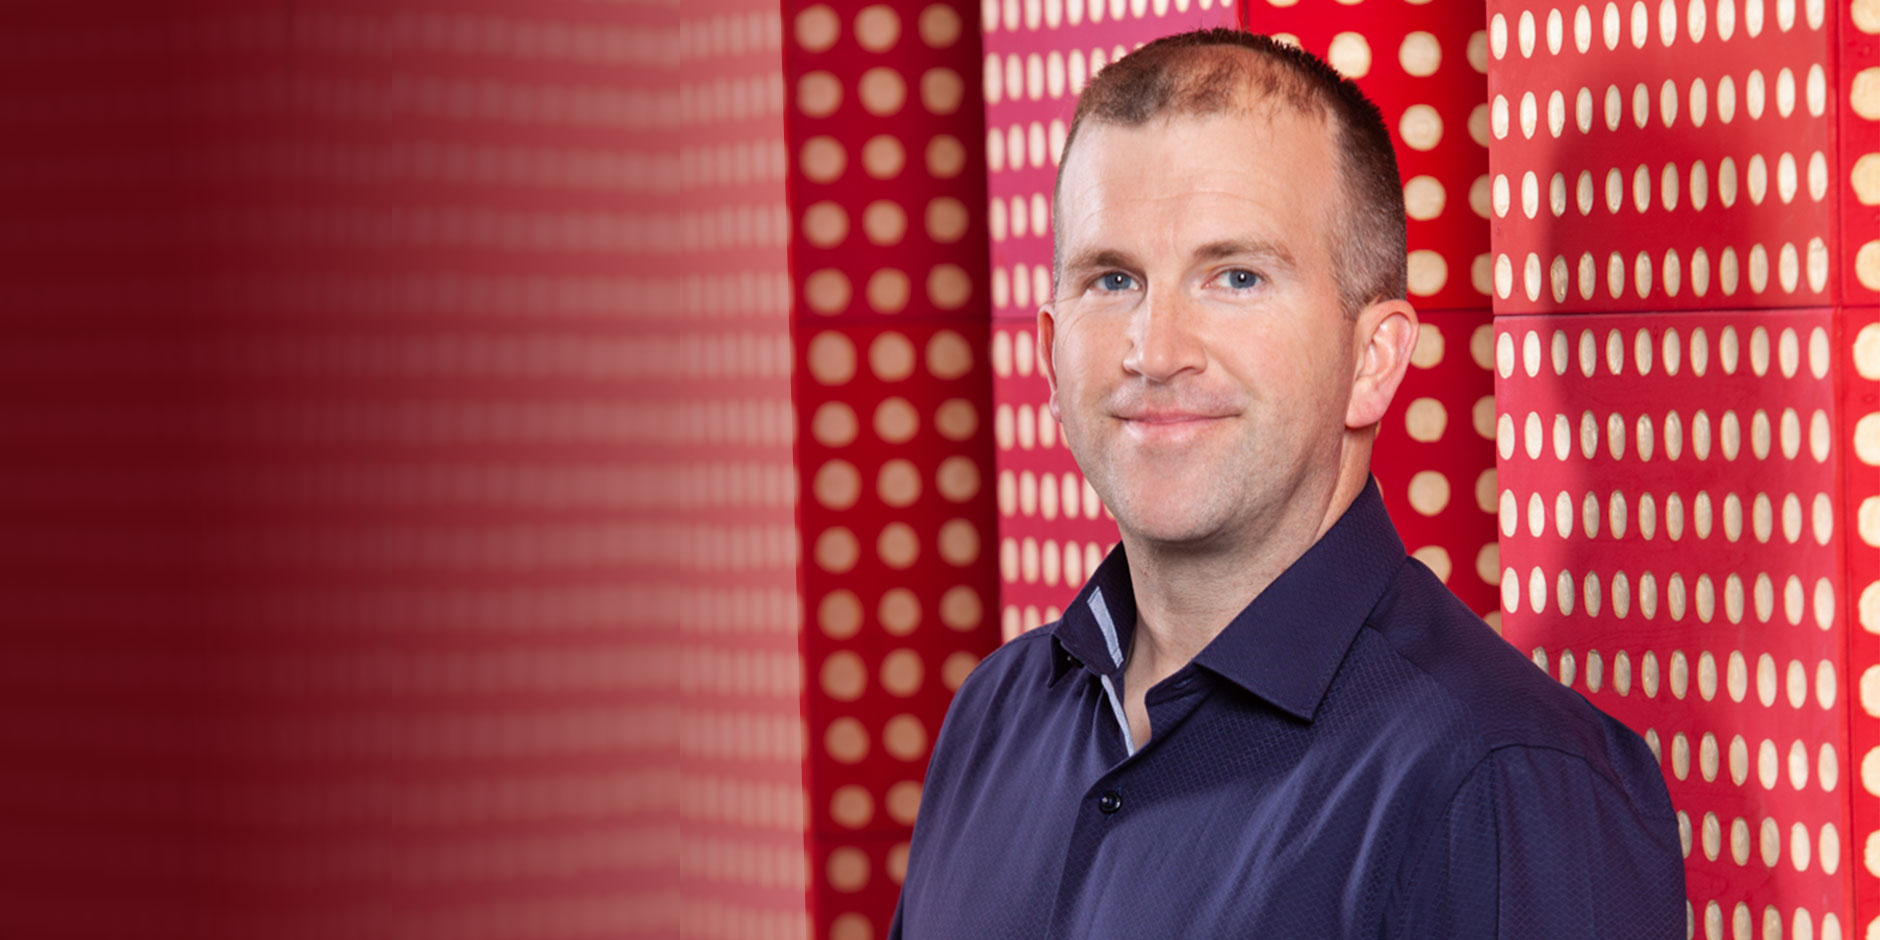 A head-and-shoulders shot of Michael Fiddelke, in a blue shirt against a red & white dot background